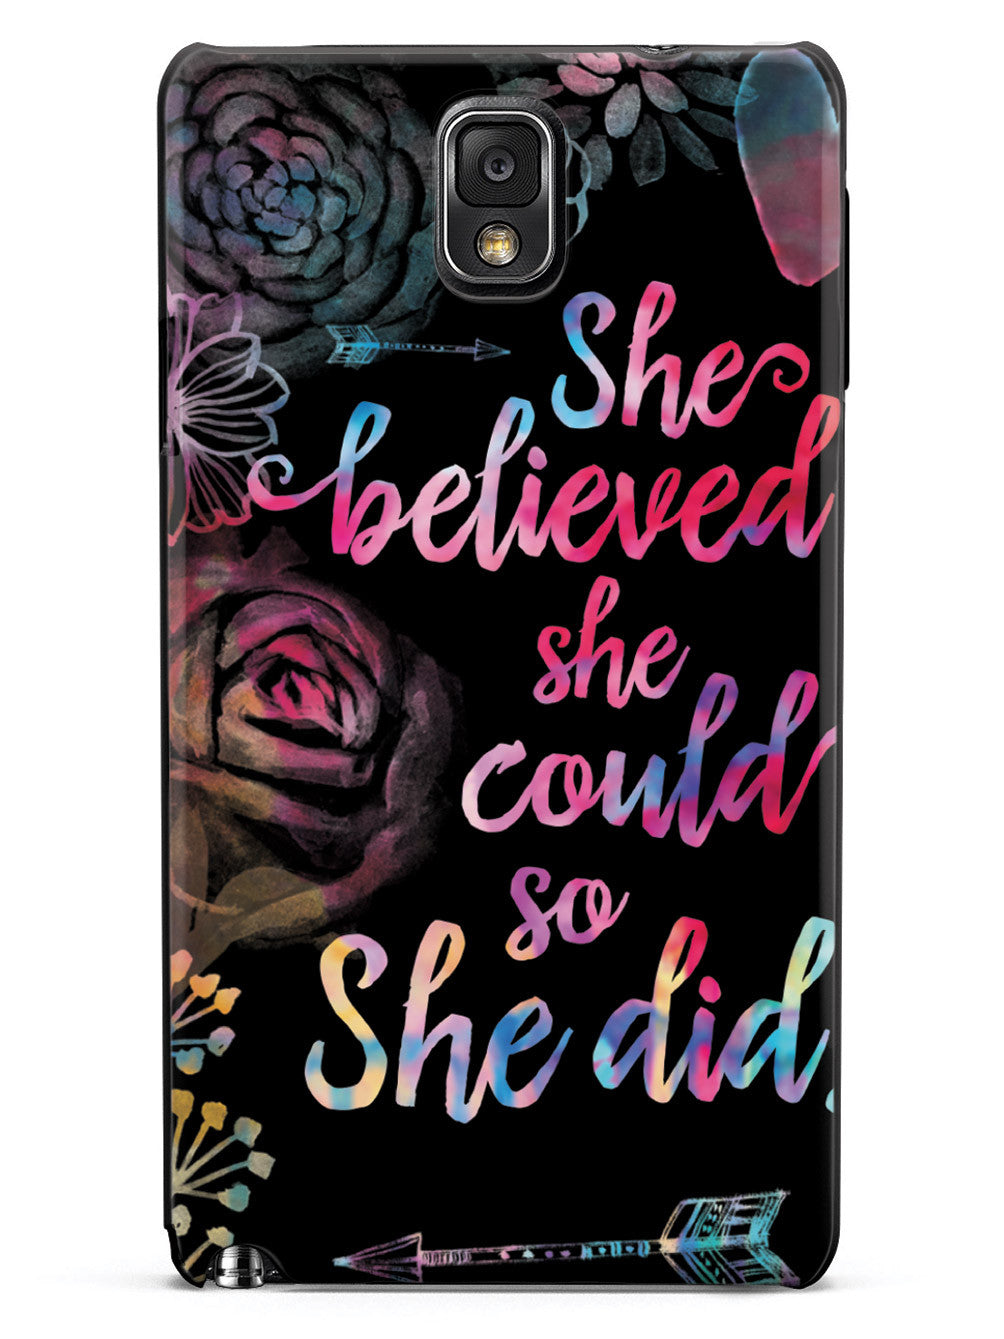 So She Did - Black Case